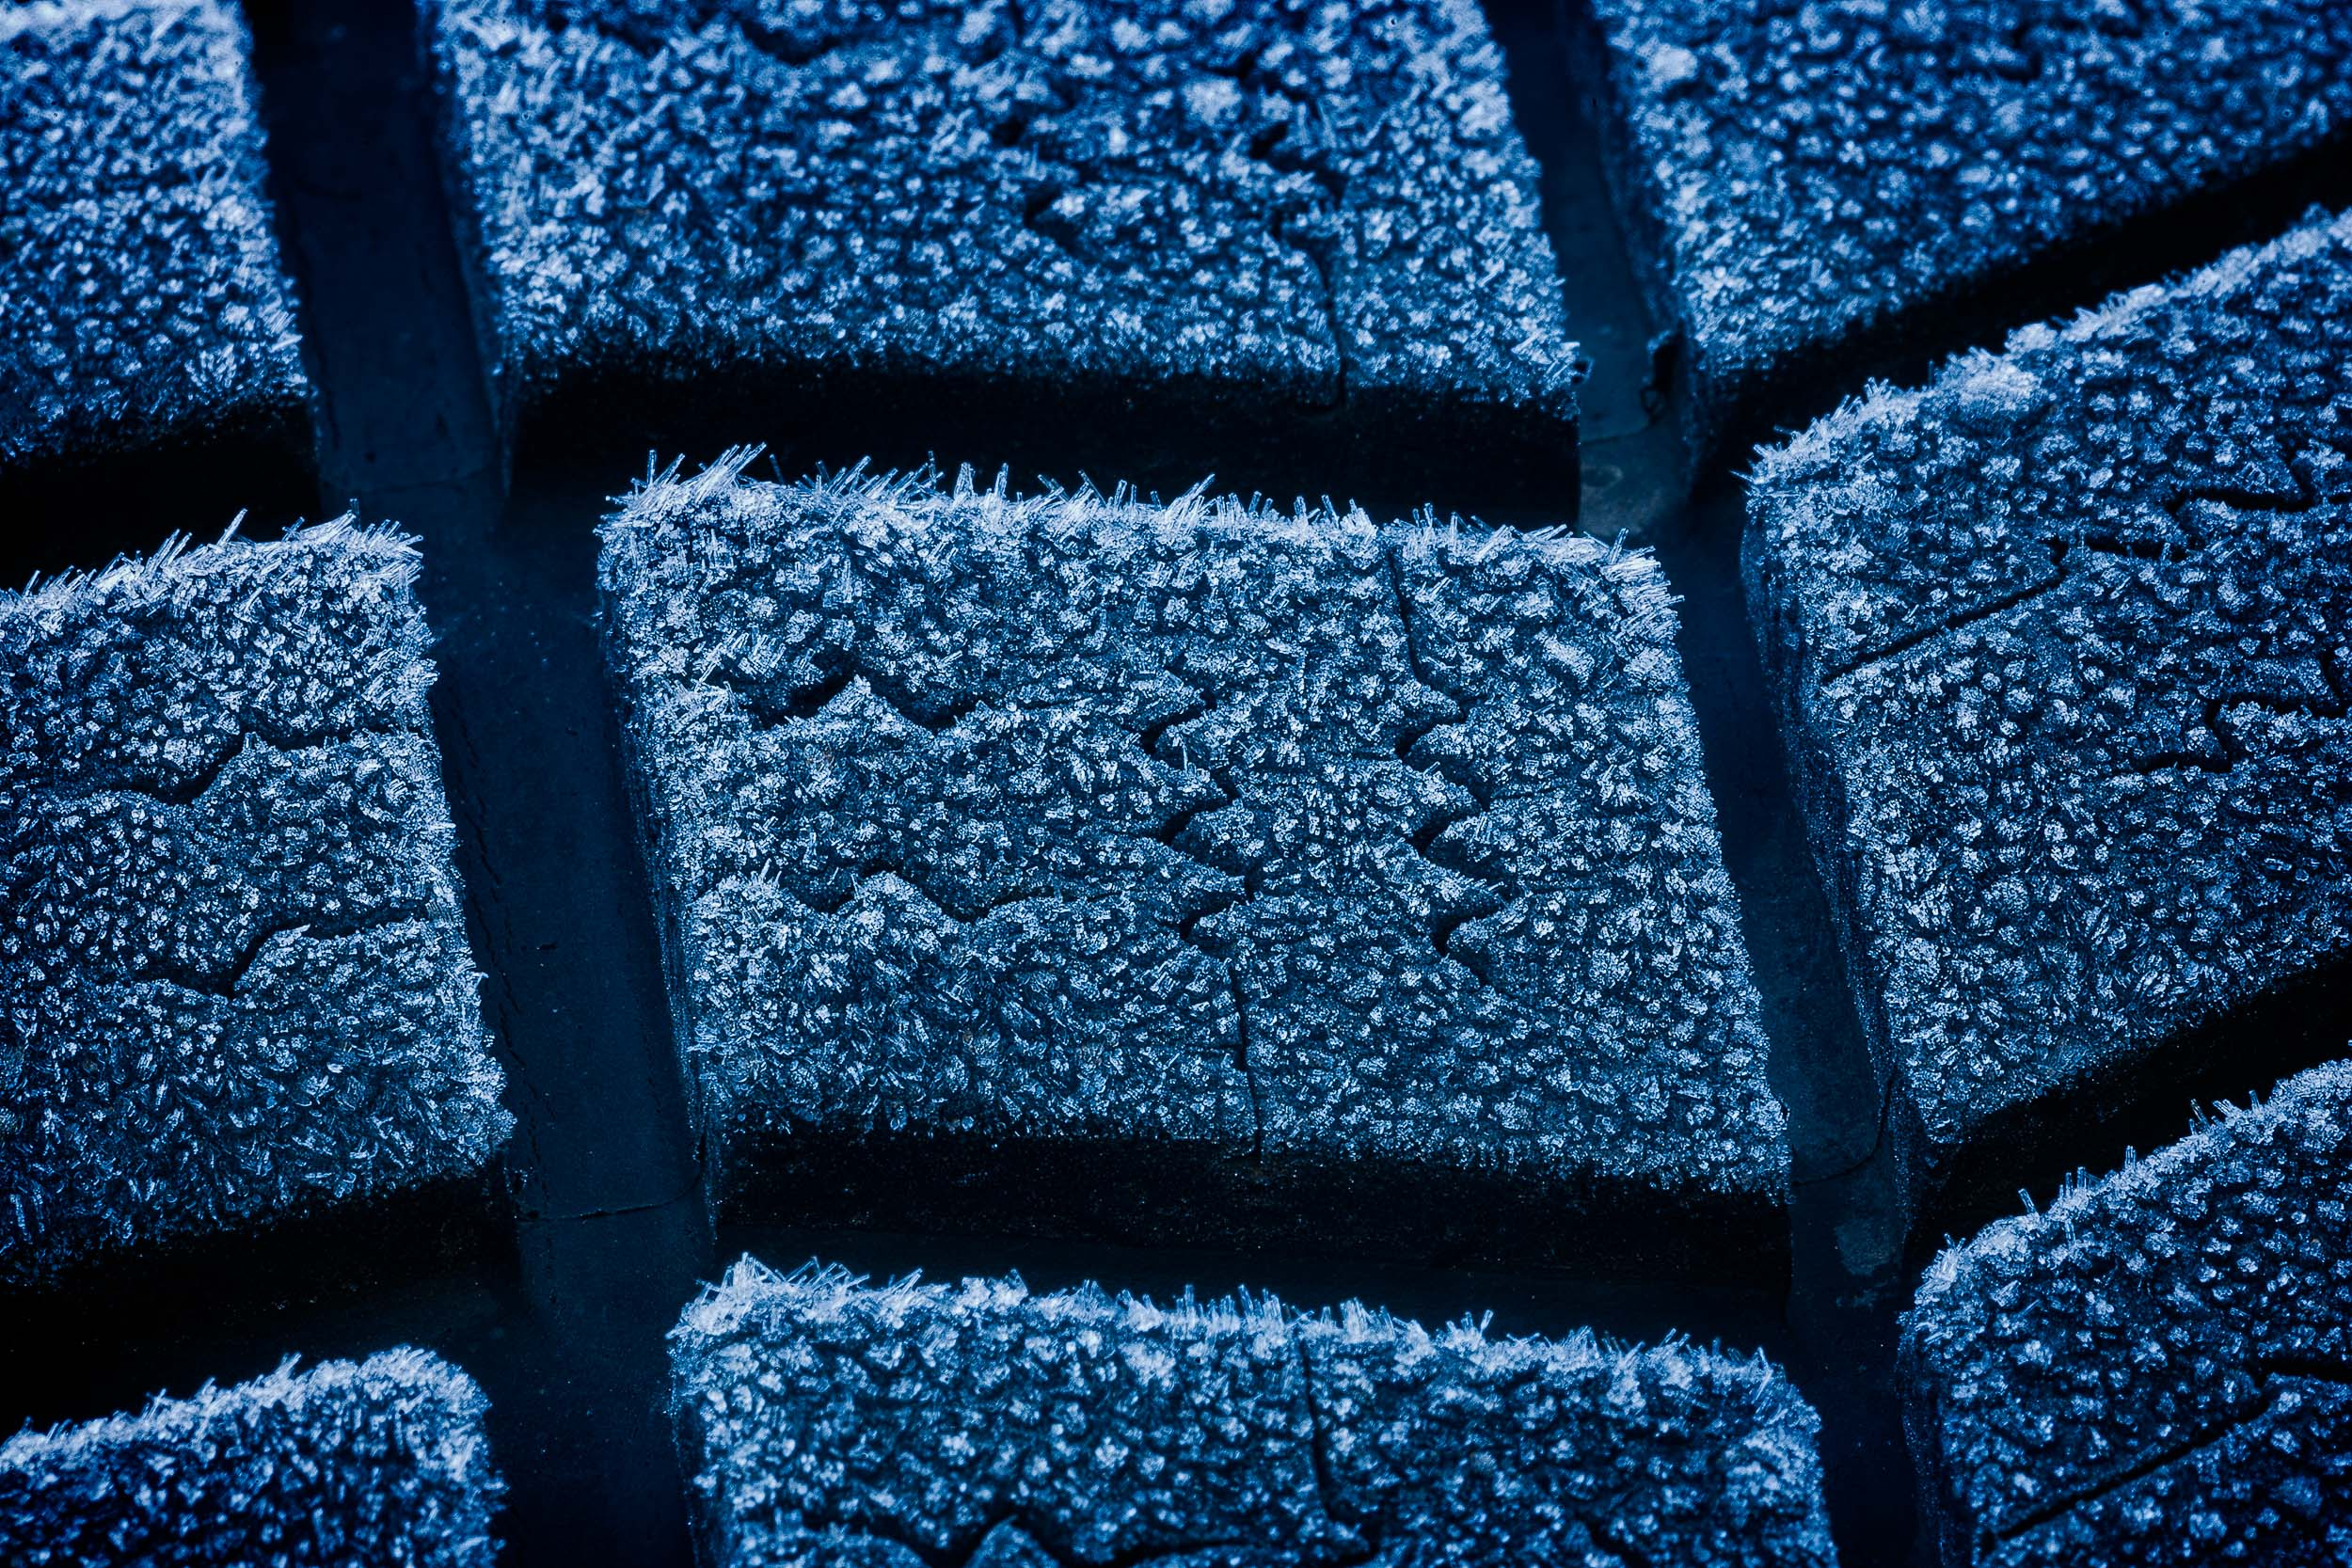 A close up of  frost on a car tyre  provides perfect subject matter for an exploration into the world of  abstraction .